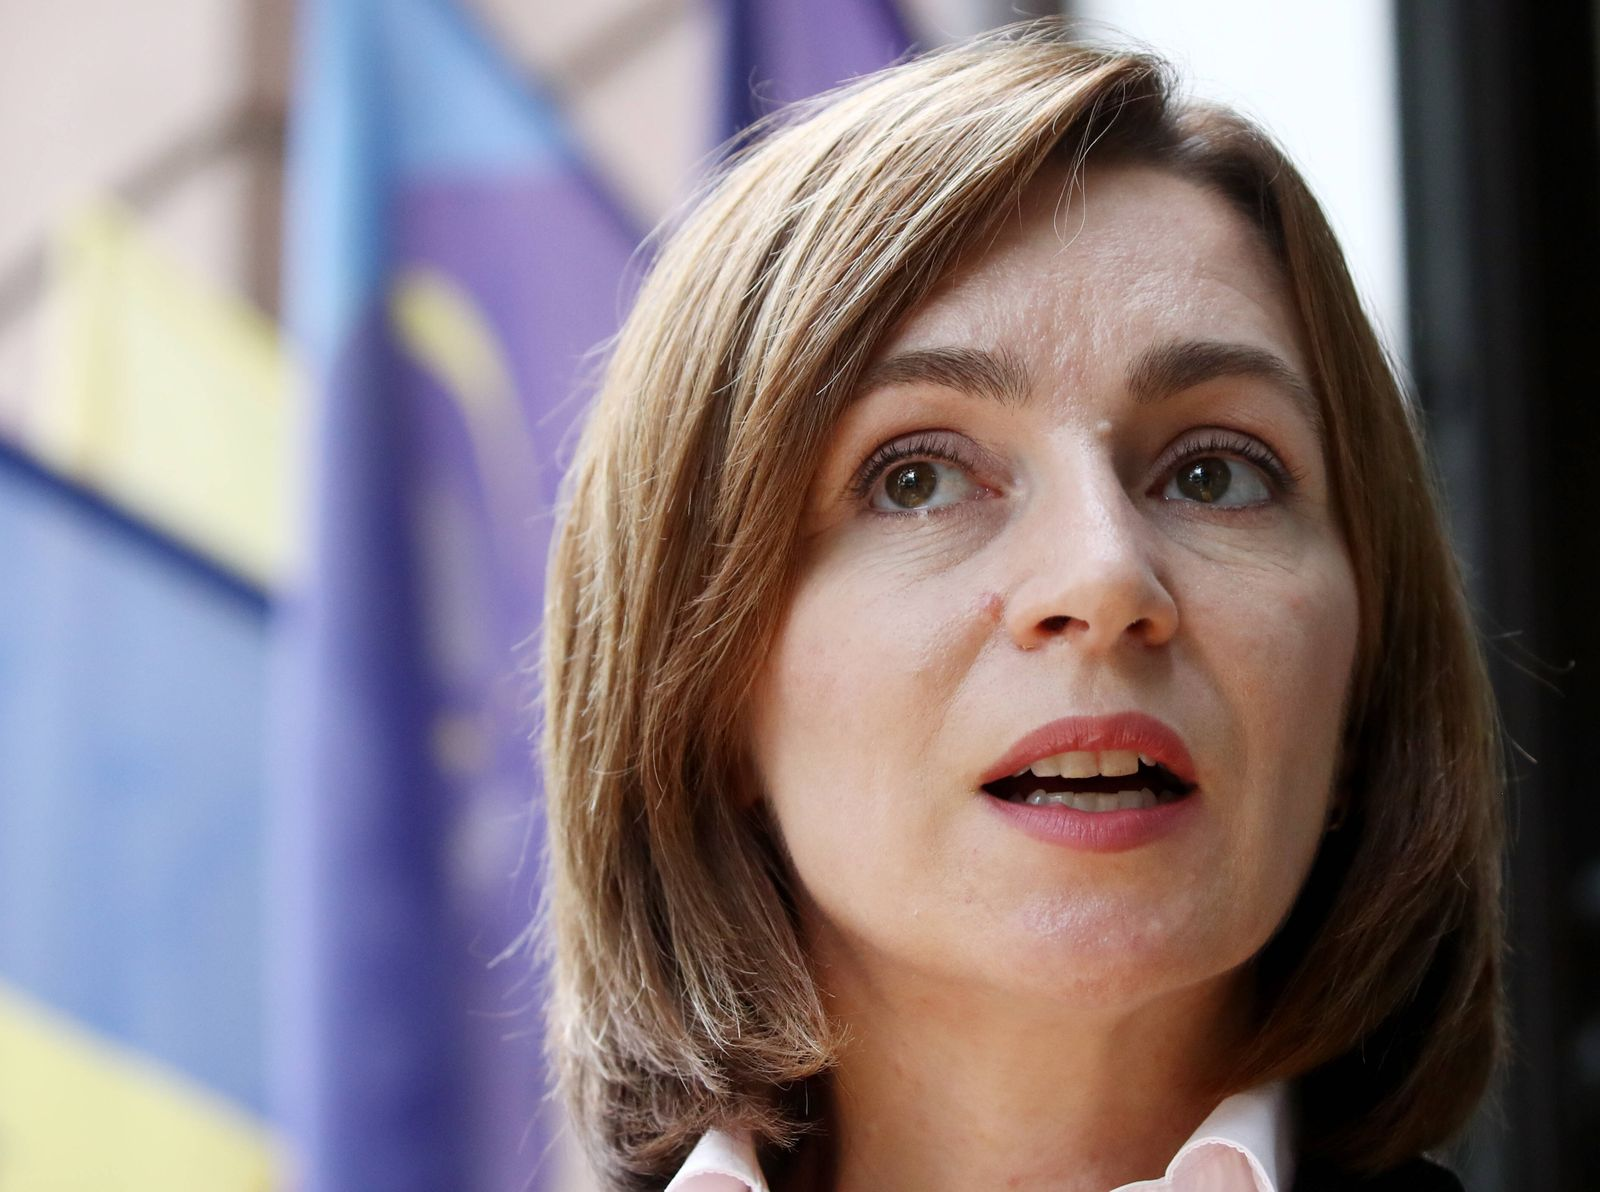 CHISINAU, MOLDOVA - OCTOBER 30, 2020: The leader of the Party of Action and Solidarity, presidential candidate Maia Sand